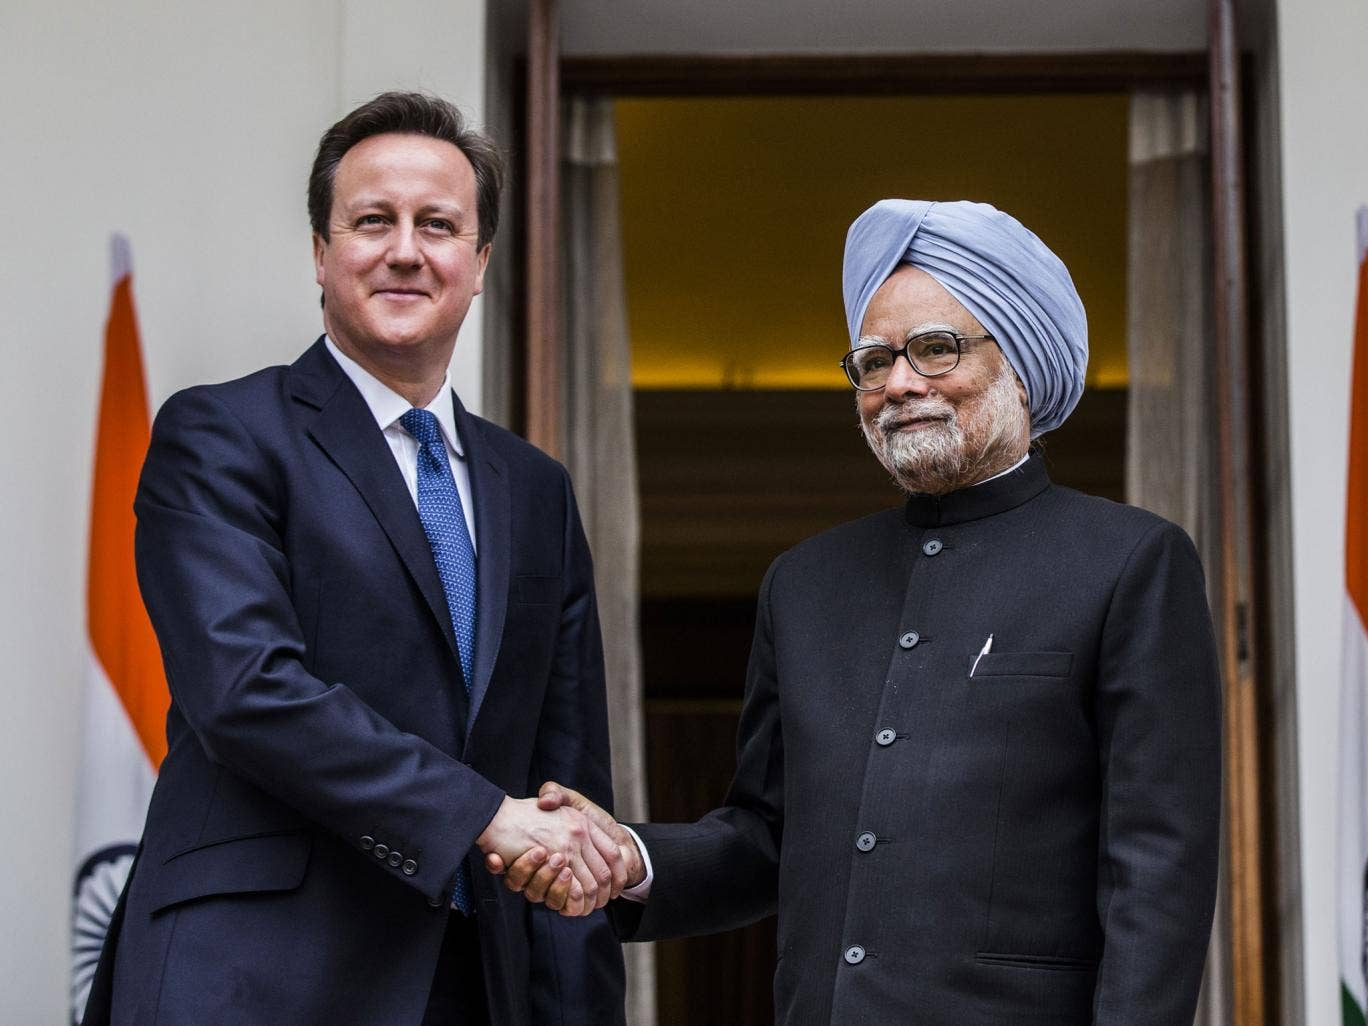 David Cameron has been urged to follow the lead of the Indian premier Manmohan Singh and boycott the summit